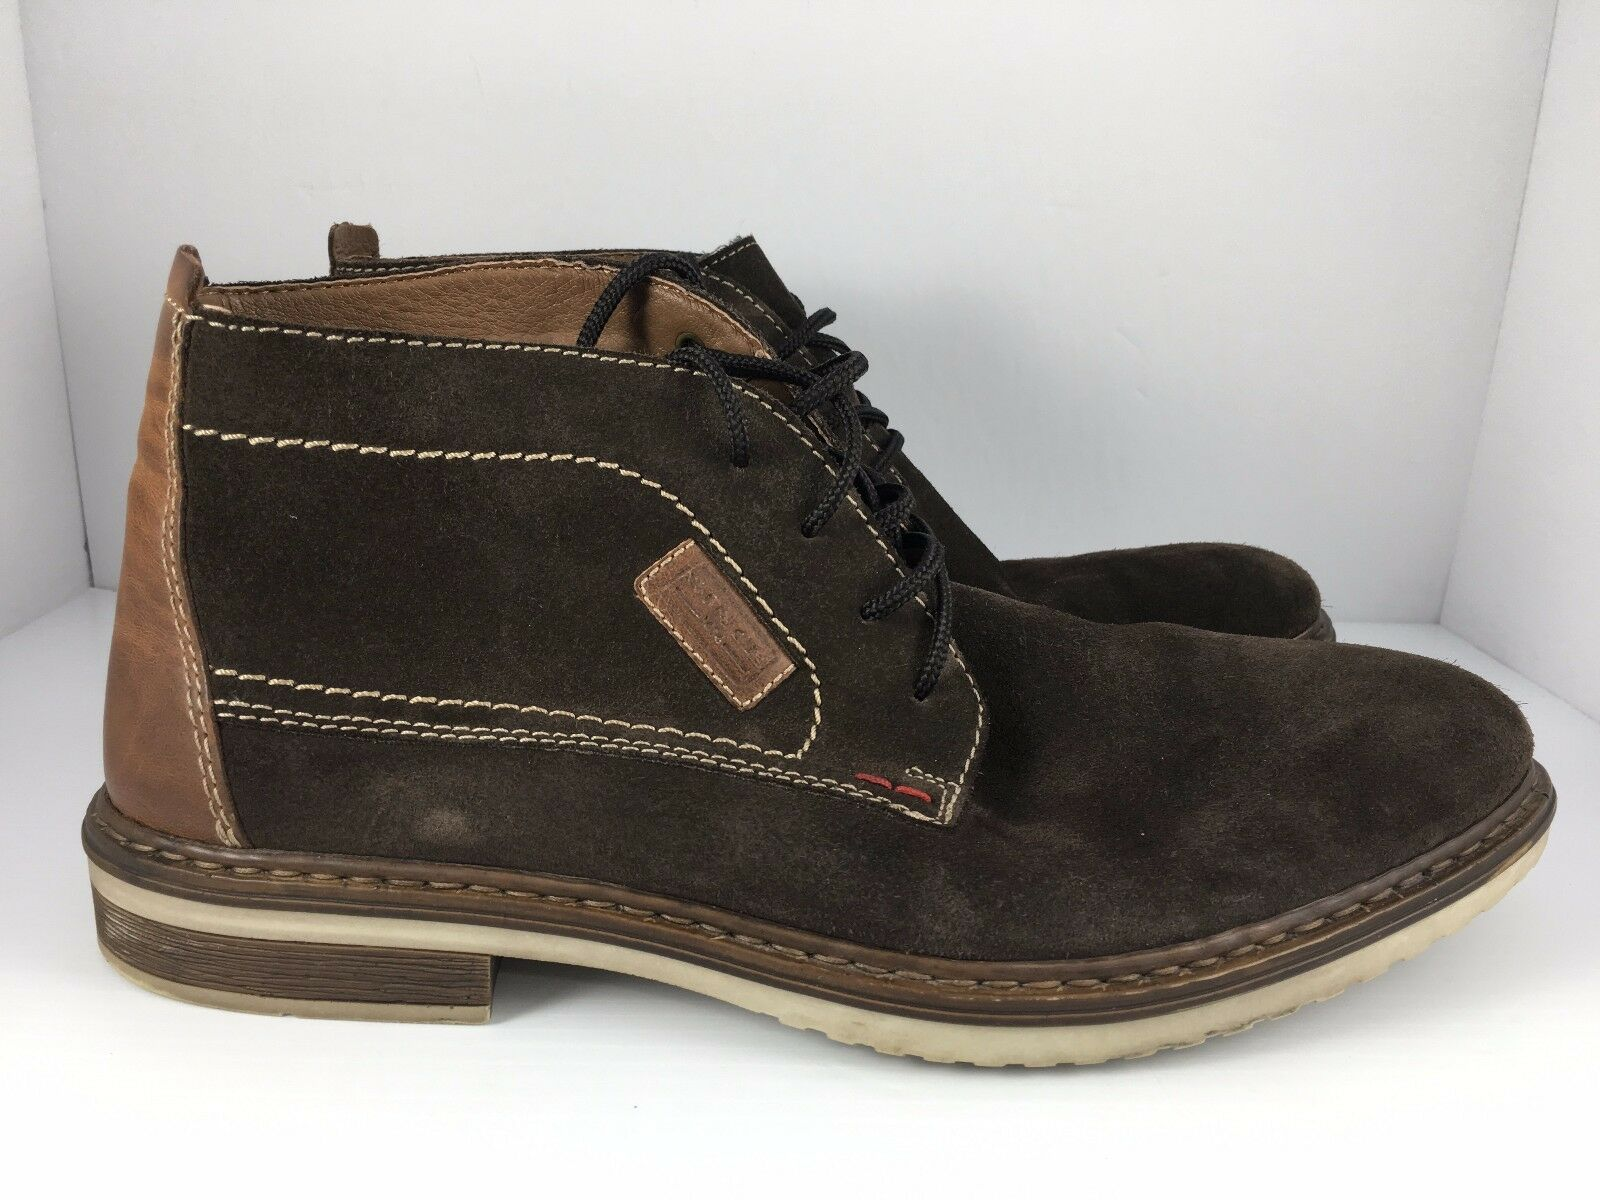 RIEKER US 10 Brown Suede Leather Ankle Chukka Boots  J16